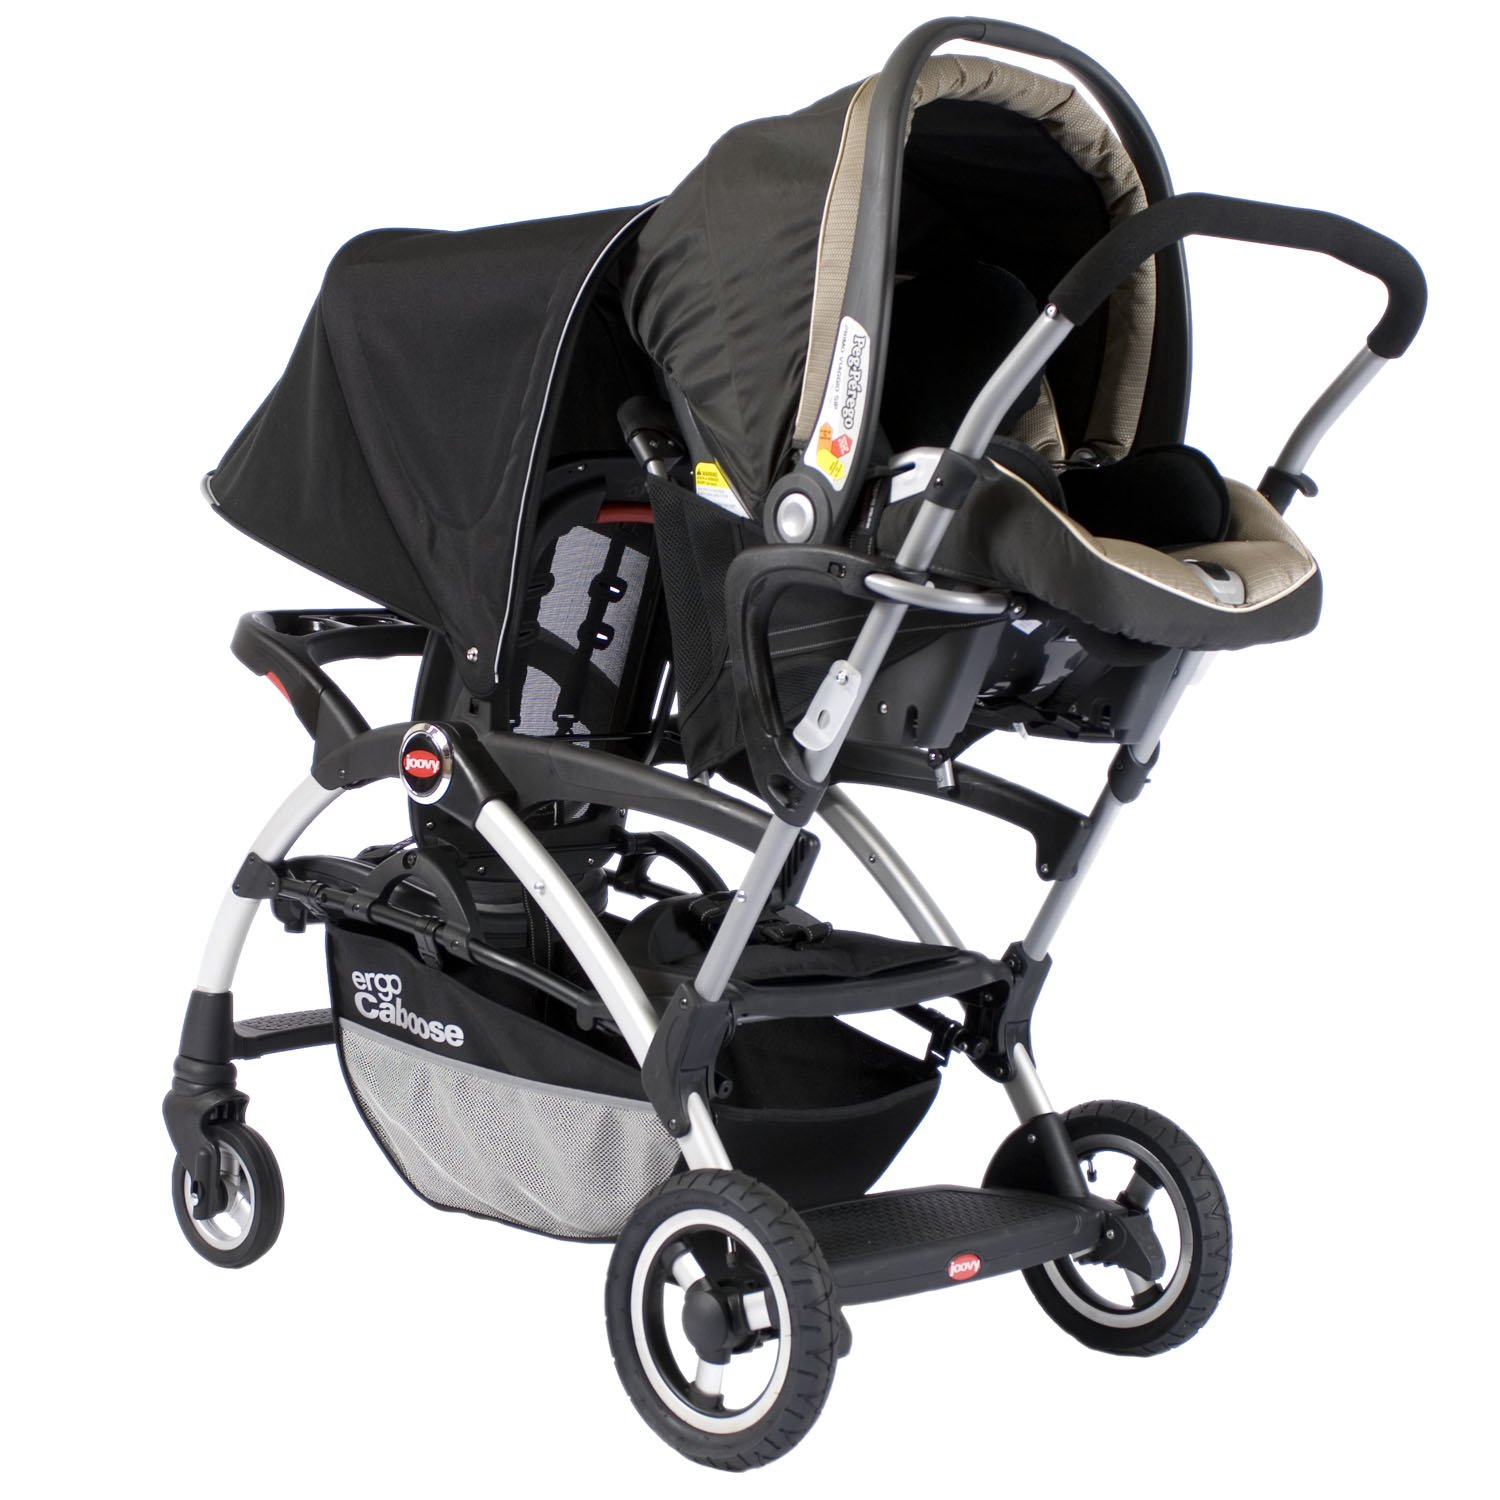 Amazon Joovy Ergo Caboose Tandem Stroller Black Discontinued by Manufacturer Baby